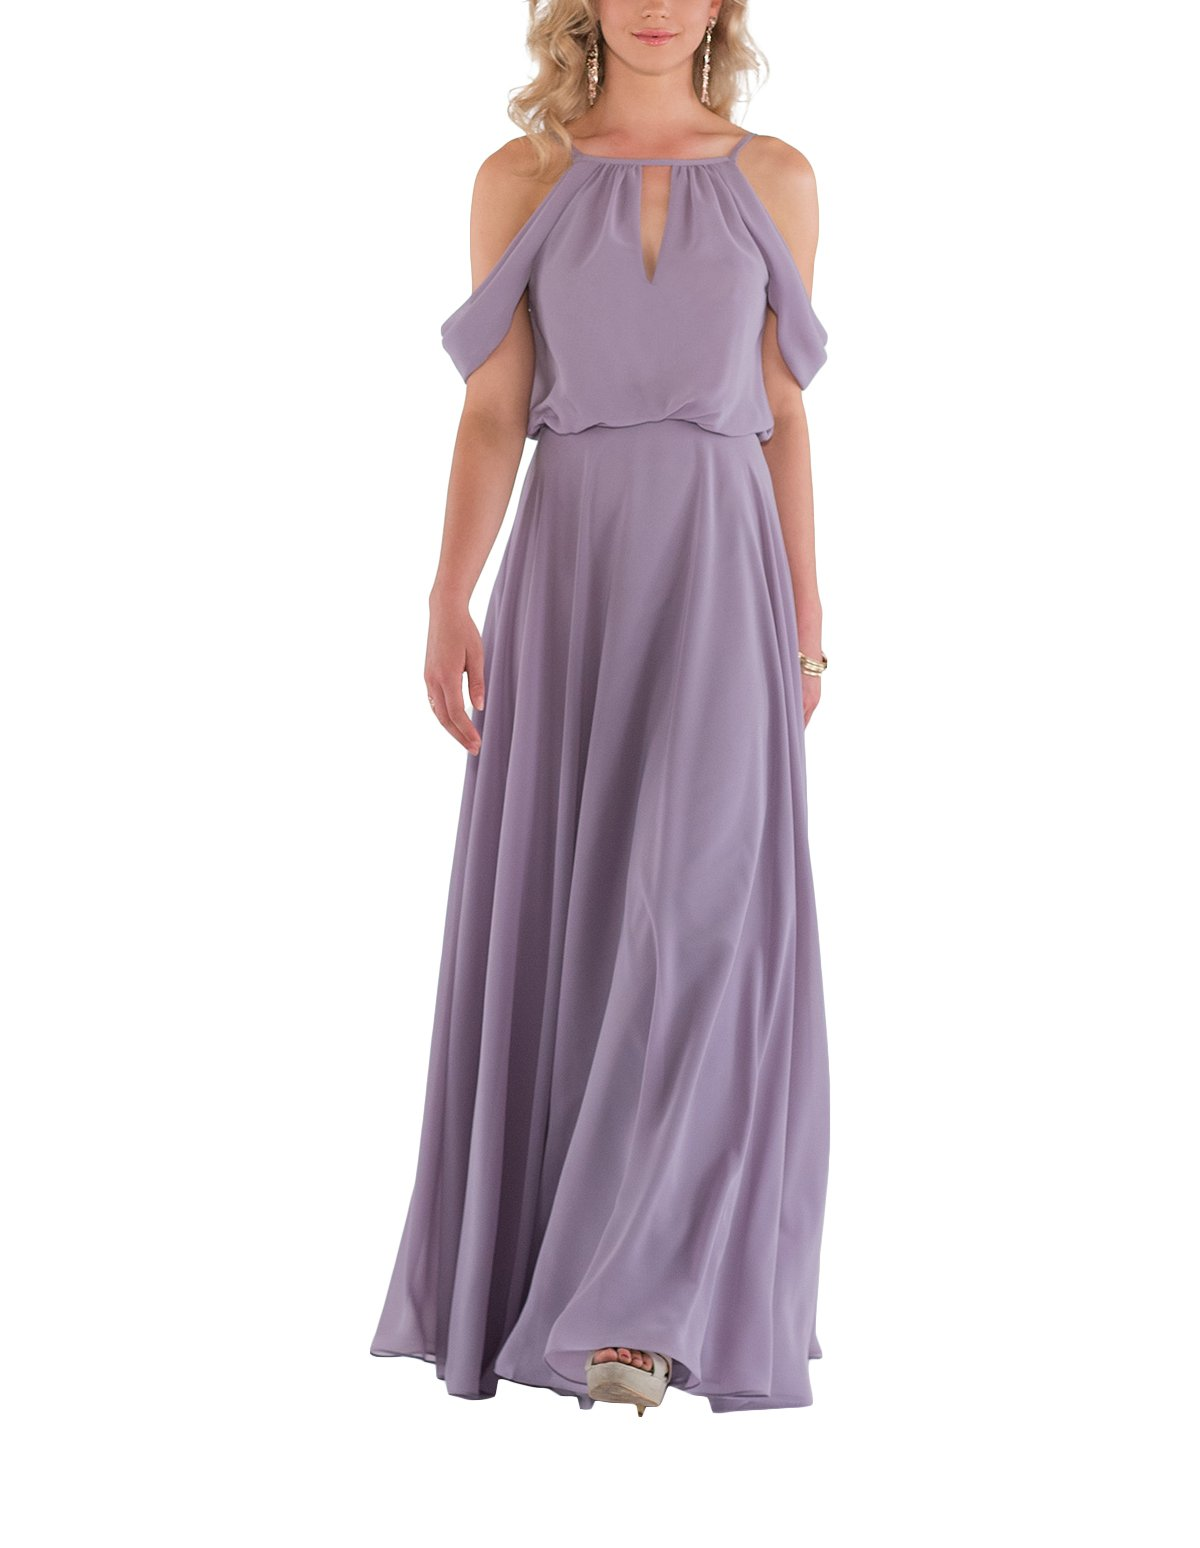 8252cd2fc85 Sorella Vita Style 8818 Bridesmaid Dress